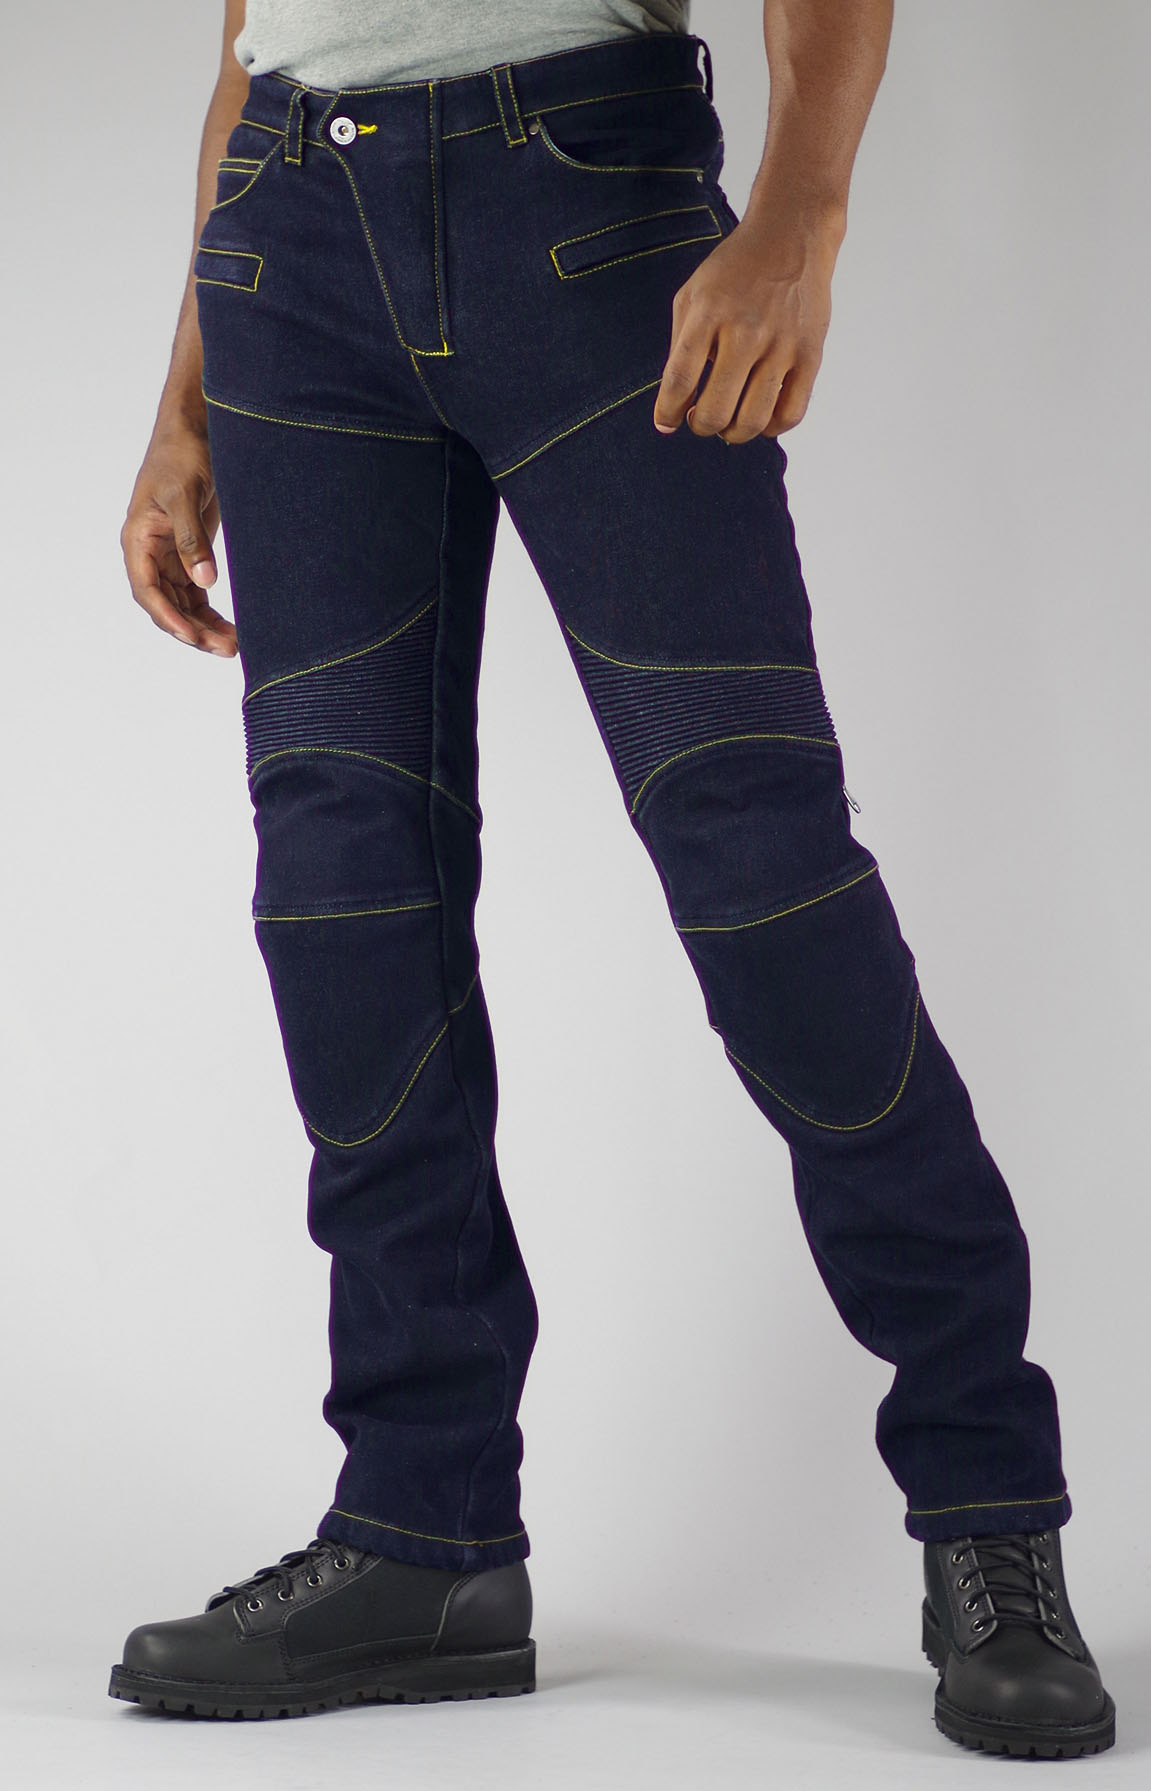 KOMINE WJ-921S Super Fit Denim chaud Jeans